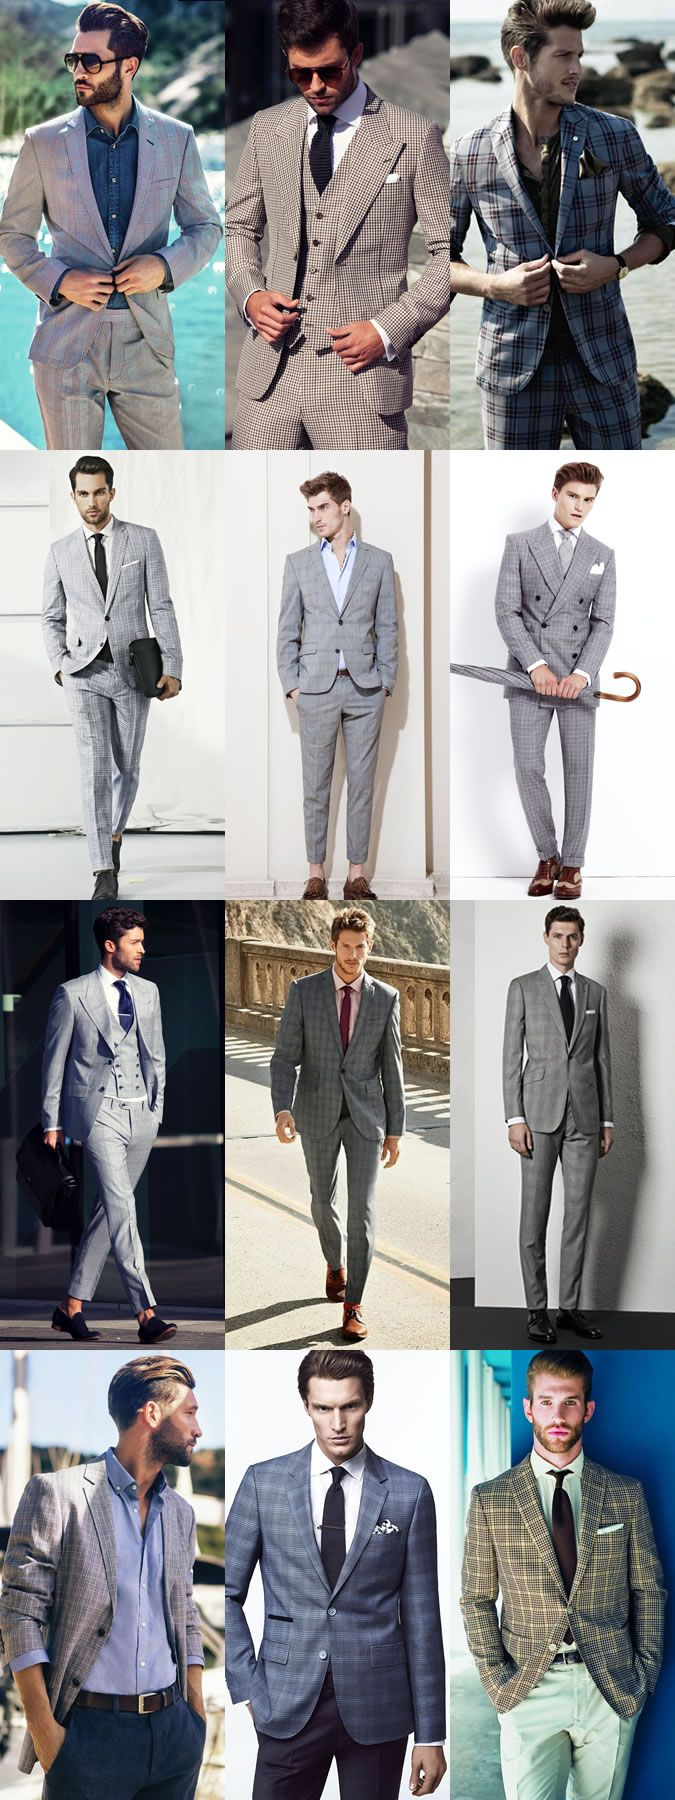 5 Key Men's Suit Styles For 2014 Spring/Summer: The Checked Suit - Full Suit & Separates Lookbook Inspiration